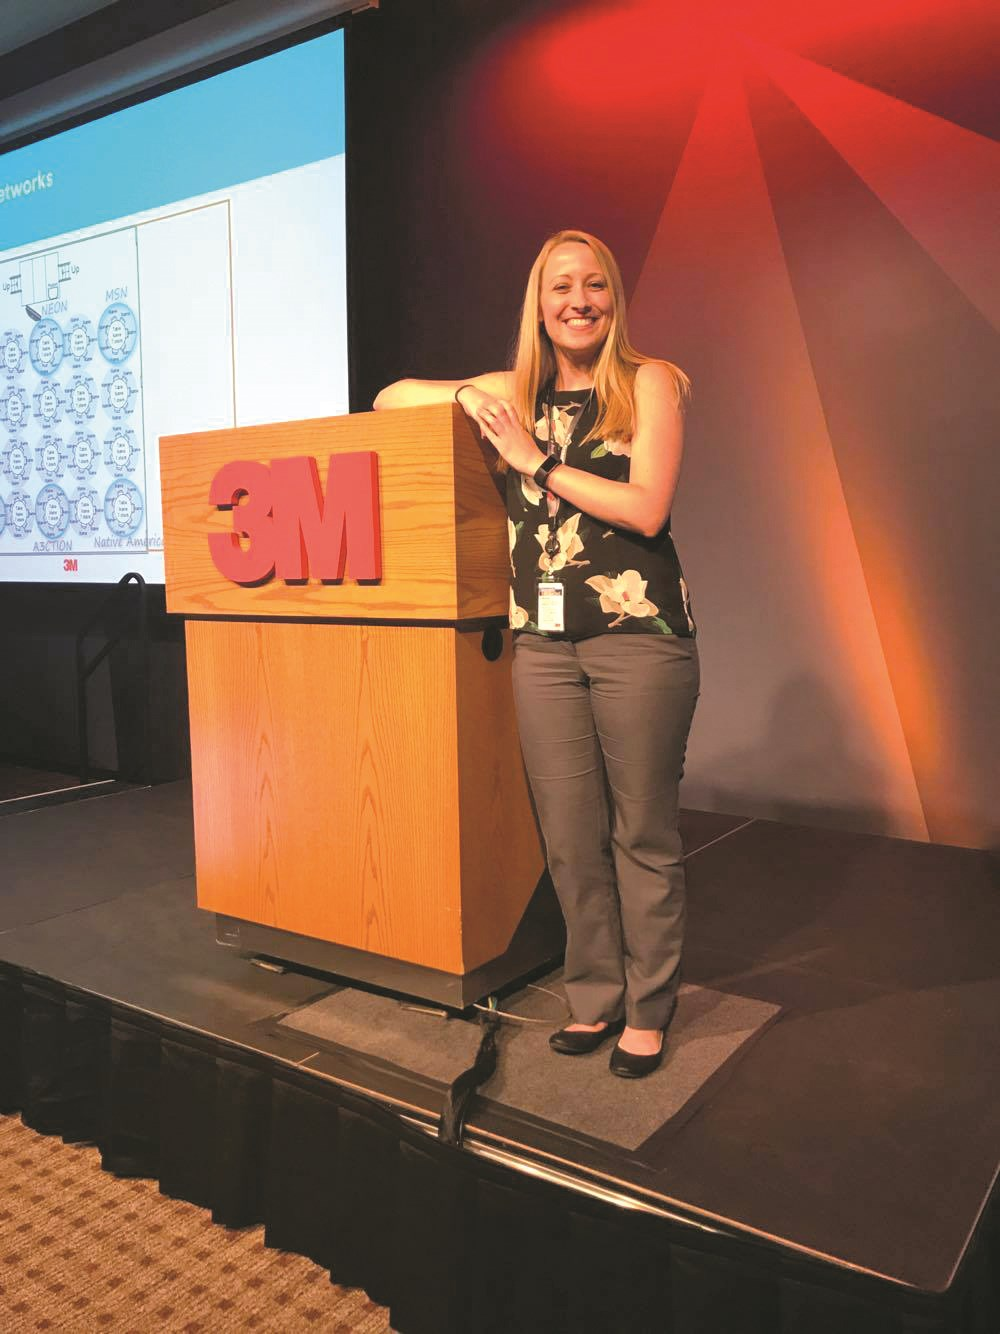 UMass Lowell Senior chemical engineering major Mikayla Essigmann, manufacturing technology process engineering intern at 3M in St. Paul, Minn.